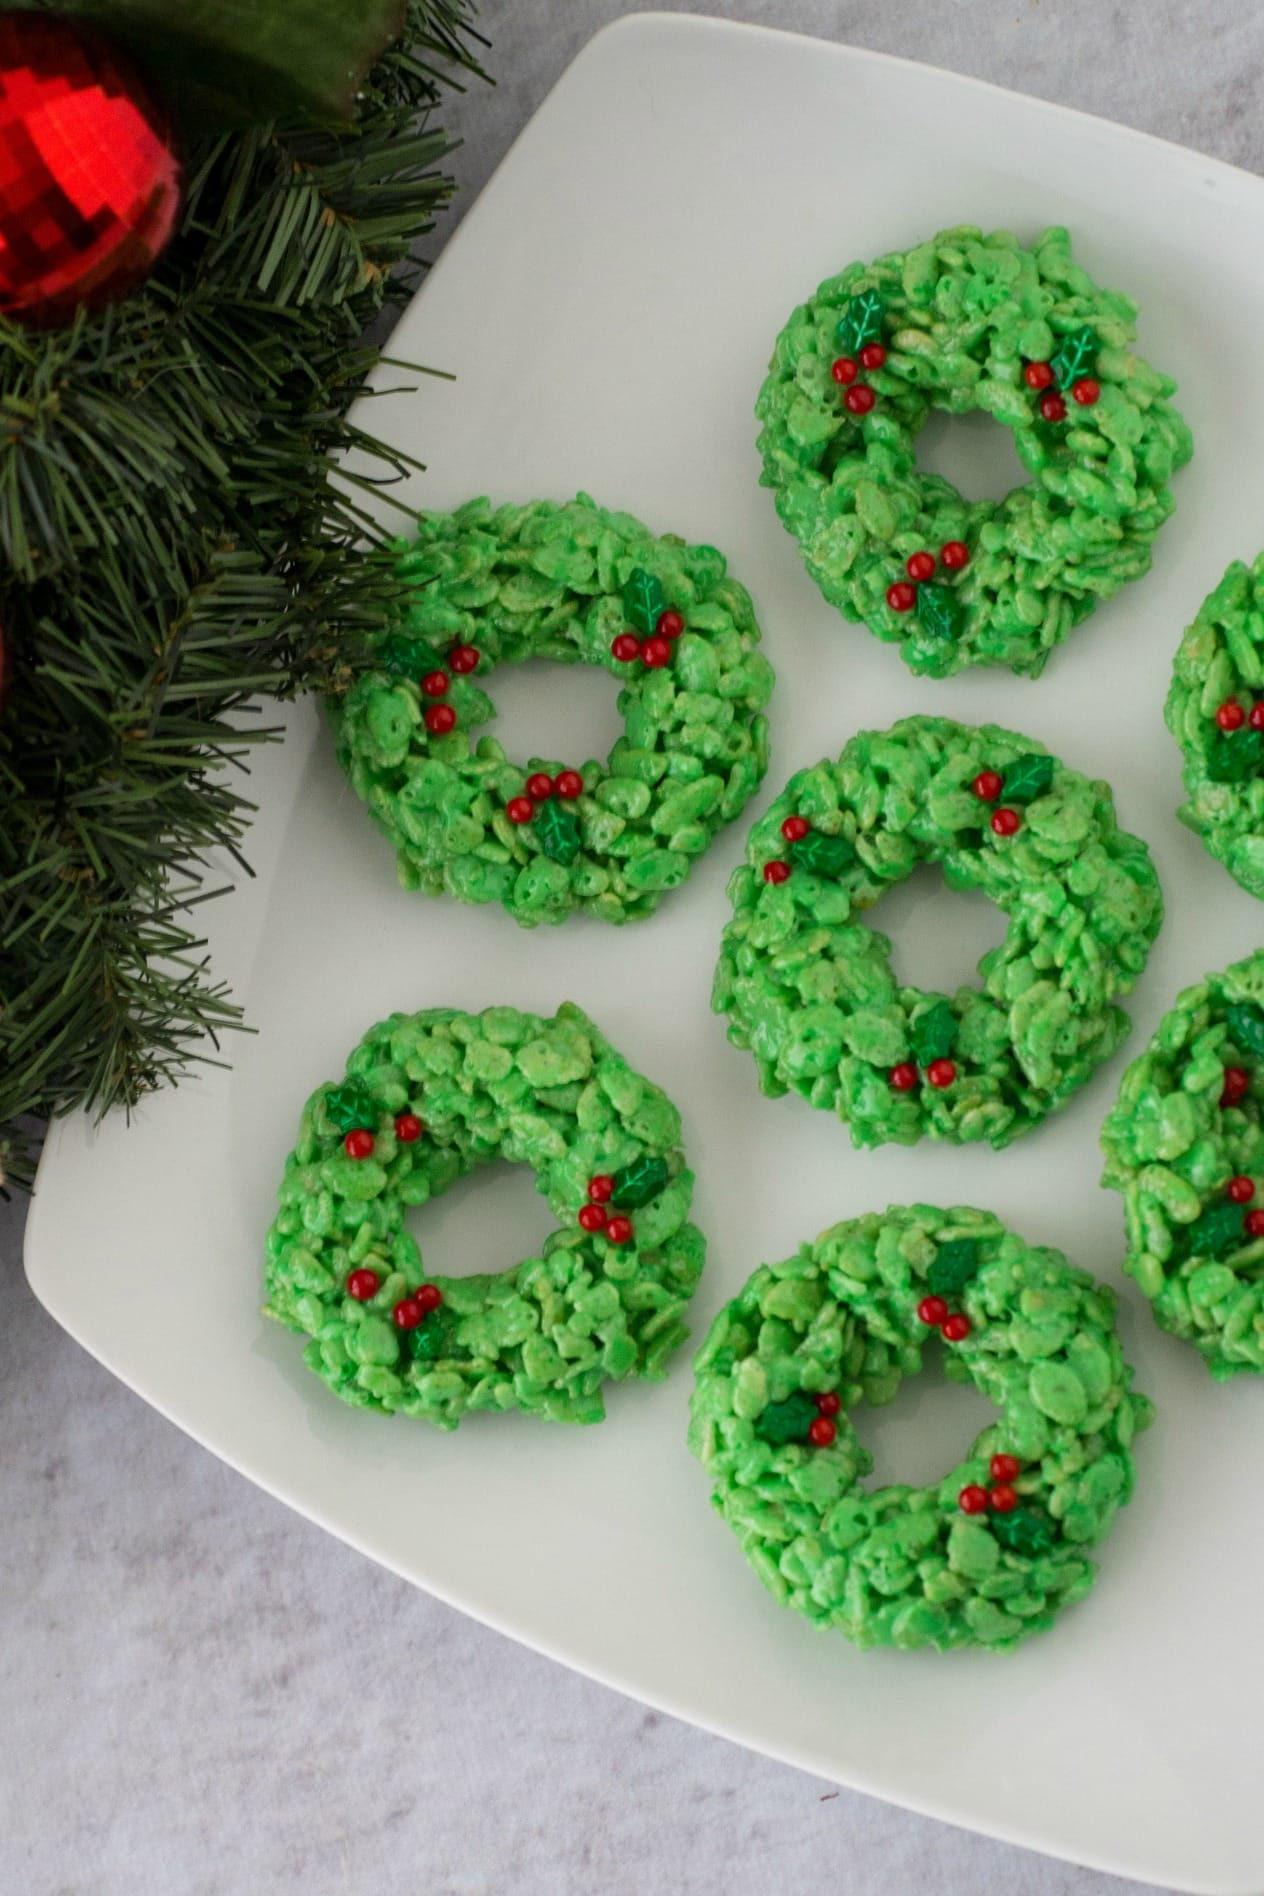 Make these cute Rice Krispie Treat Wreaths this holiday season for a simple Christmas treats! With the basic Rice Krispie treat recipe, some food coloring and decorations you can have an adorable wreath Christmas cookie. #ricekrispietreats #wreath #christmascookie #holidaybaking